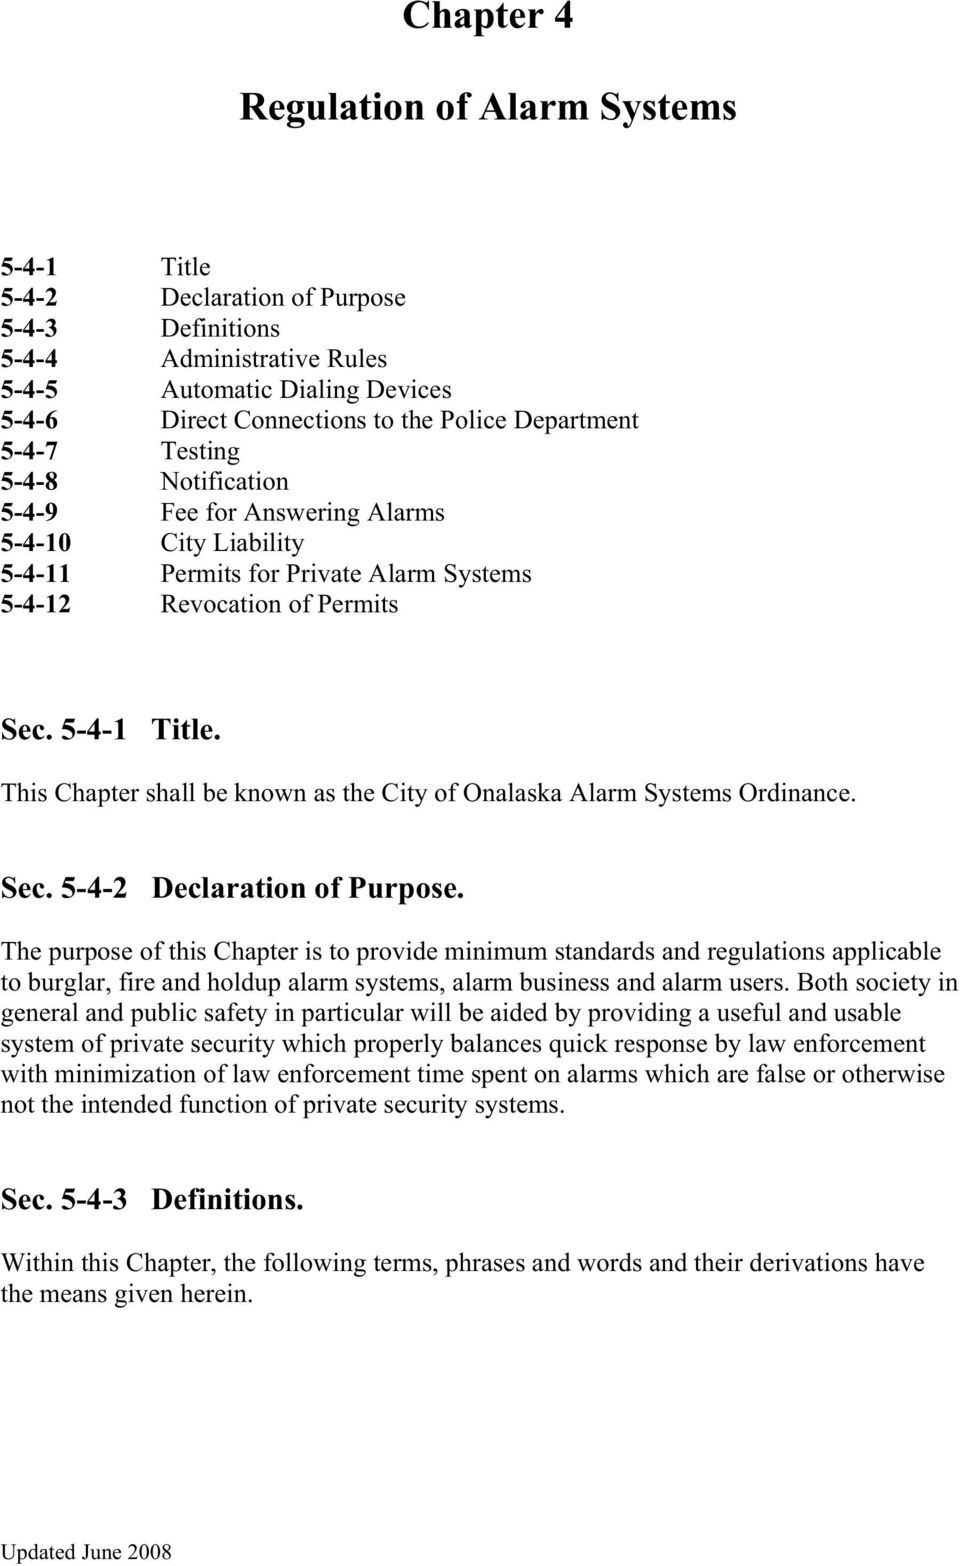 This Chapter shall be known as the City of Onalaska Alarm Systems Ordinance. Sec. 5-4-2 Declaration of Purpose.